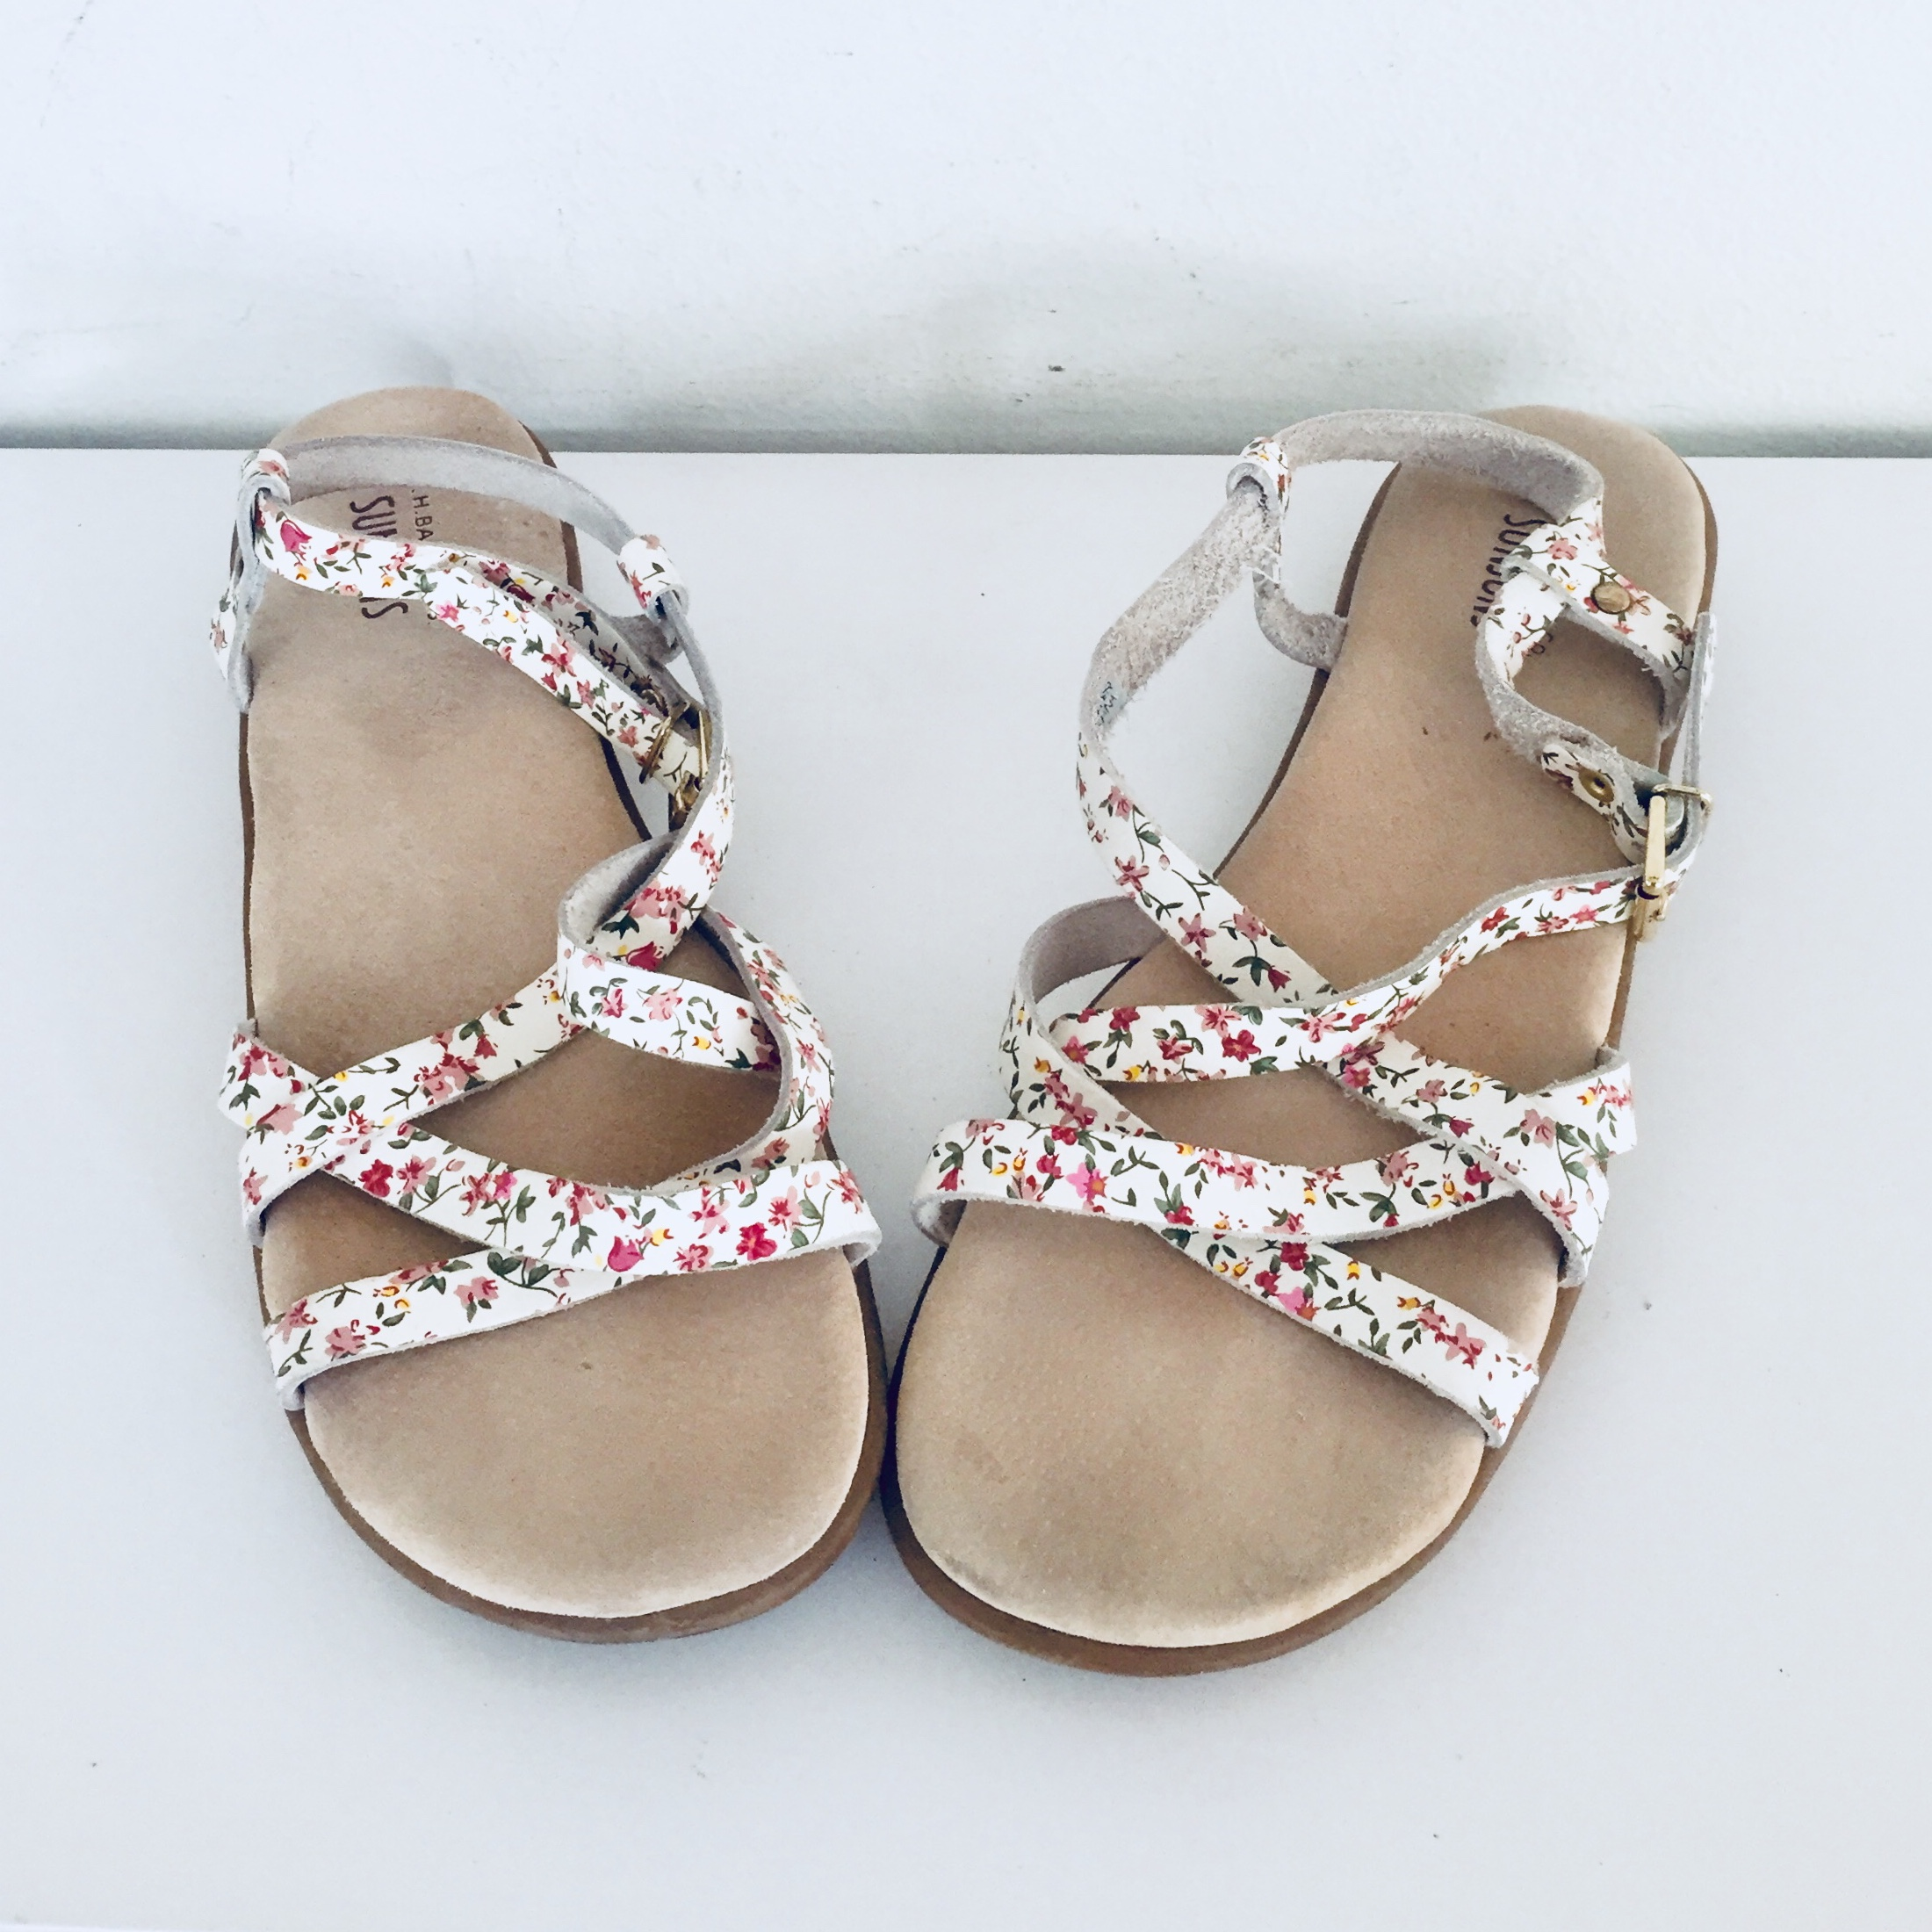 a0a79b471f6f6 White Leather Sandals Flats Ankle Straps 10 M 41 42... - Depop